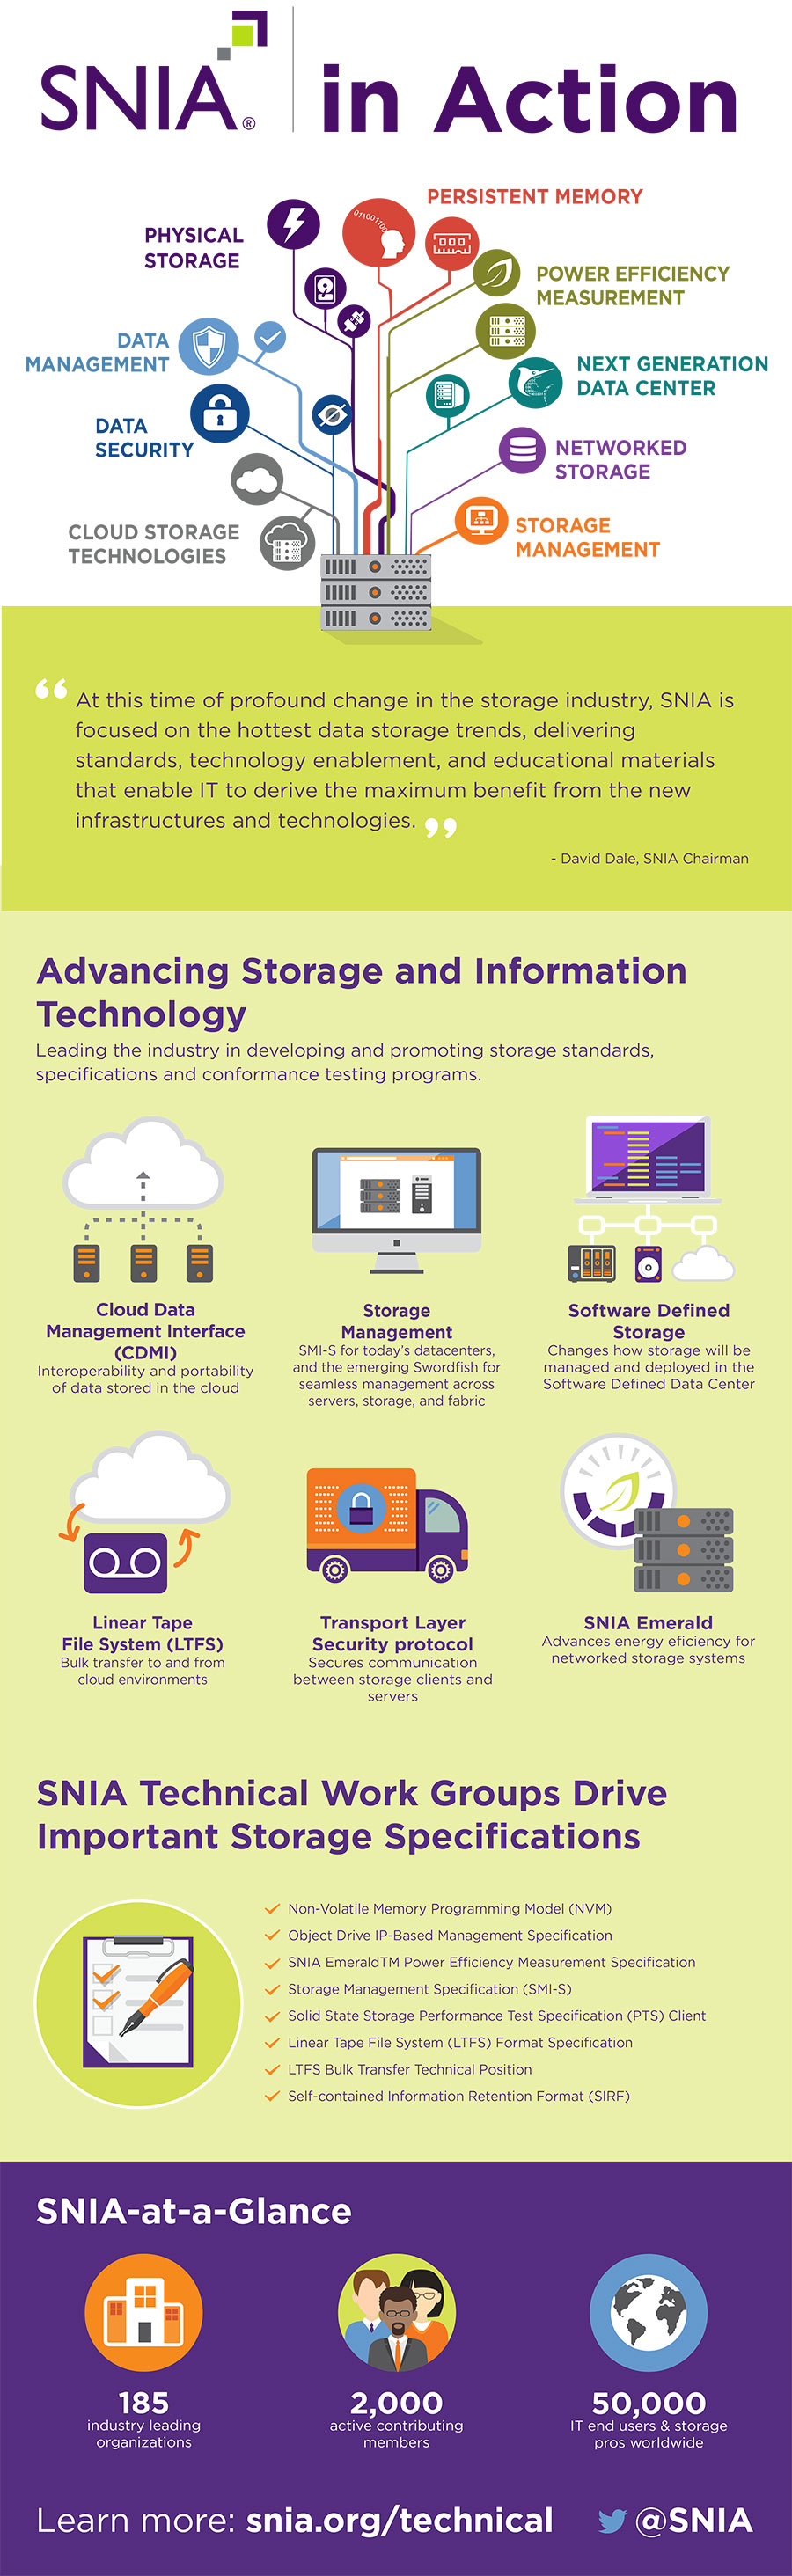 How SNIA Advances Storage Technologies